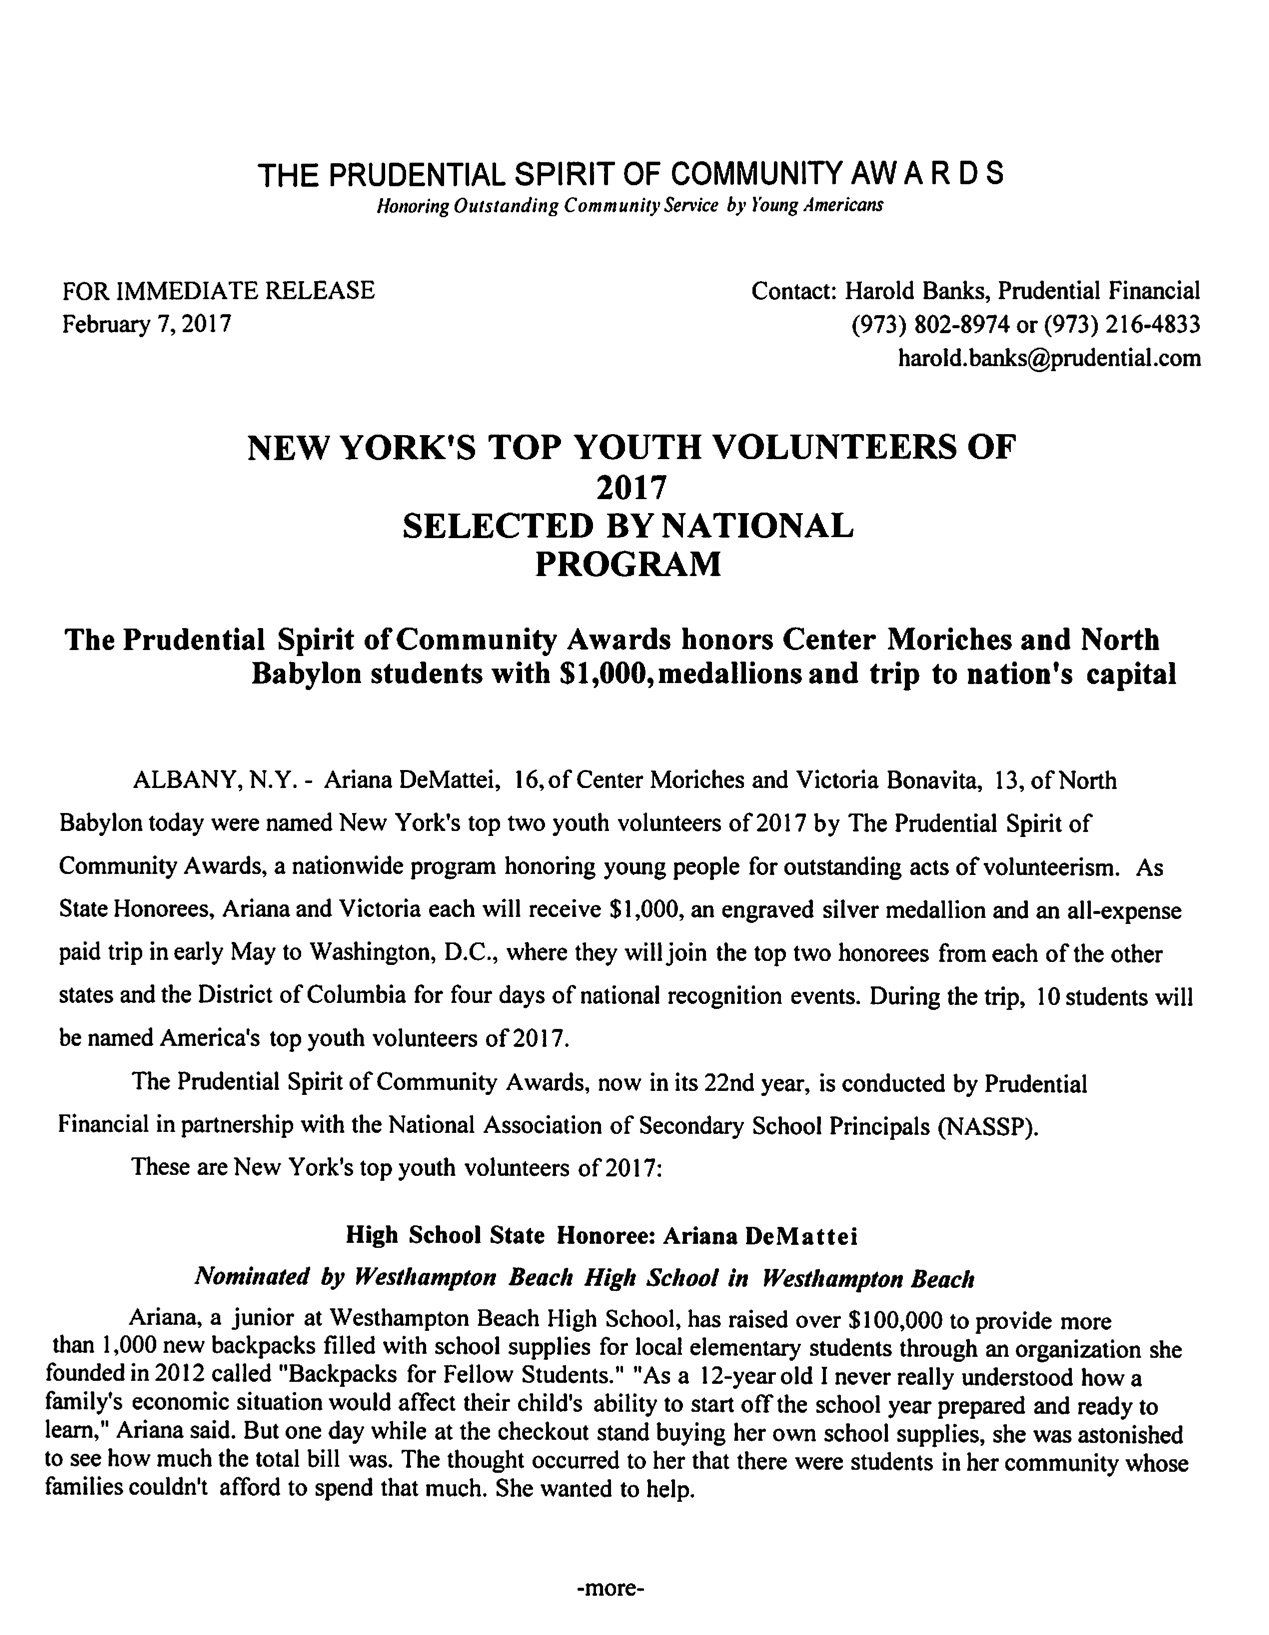 "ARIANA DEMATTEI IS CHOSEN AMOUNG NEW YORK'S TOP YOUTH VOLUNTEERS OF 2017. HER CHARITY ""BACKPACKS FOR FELLOW STUDENTS"" IS A CHARITY ""BE THE SPARK"" PROUDLY SPONSORED IN THE 2016/2017 YEAR."